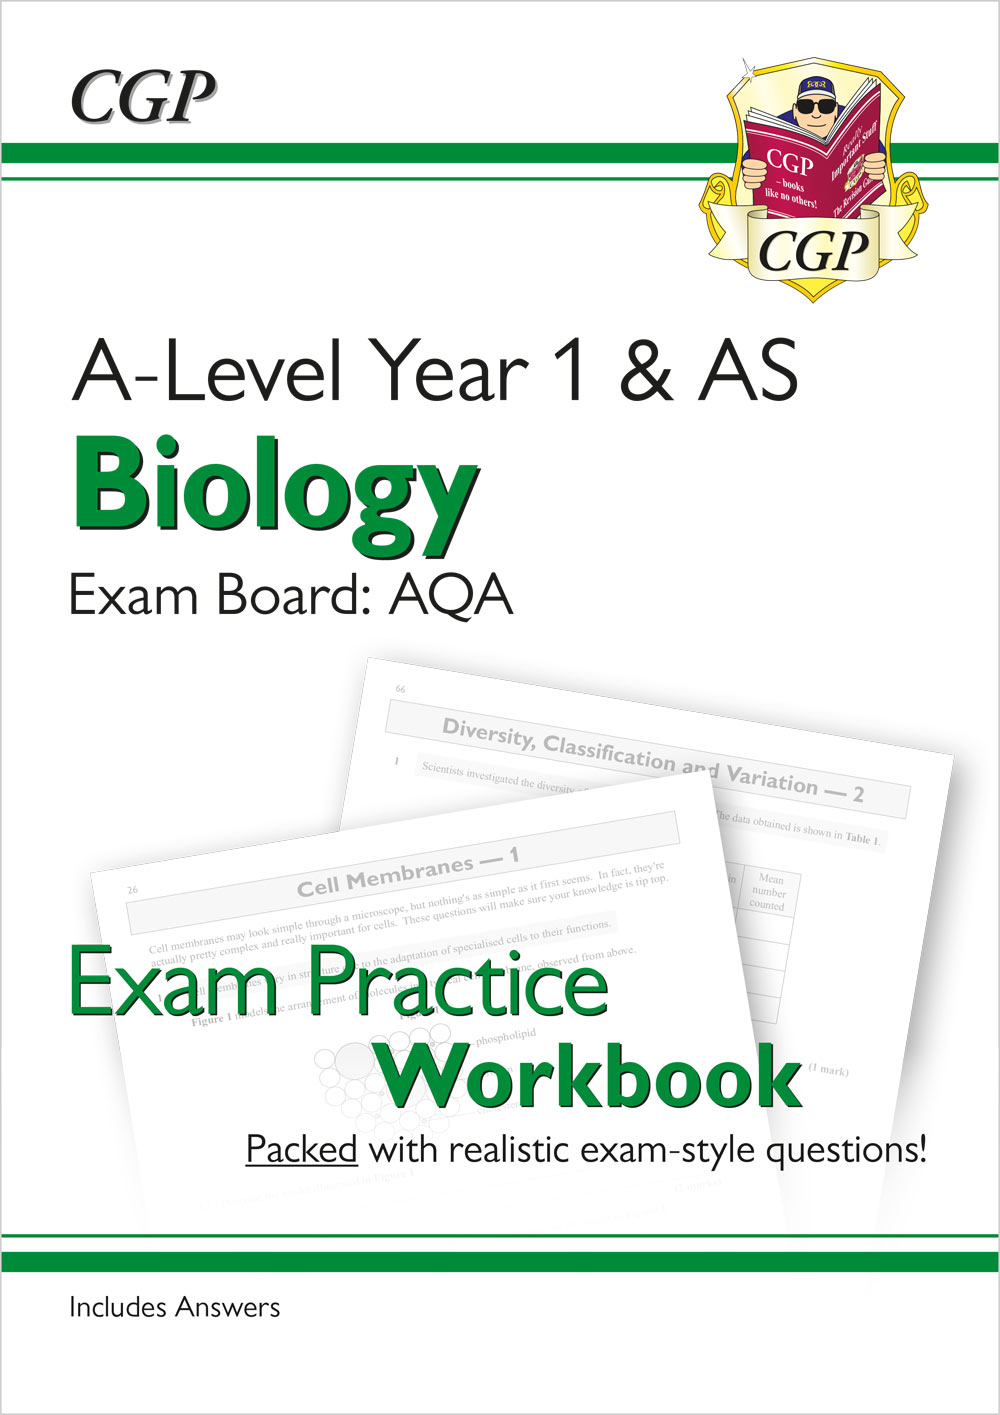 BAQ51 - New A-Level Biology: AQA Year 1 & AS Exam Practice Workbook - includes Answers